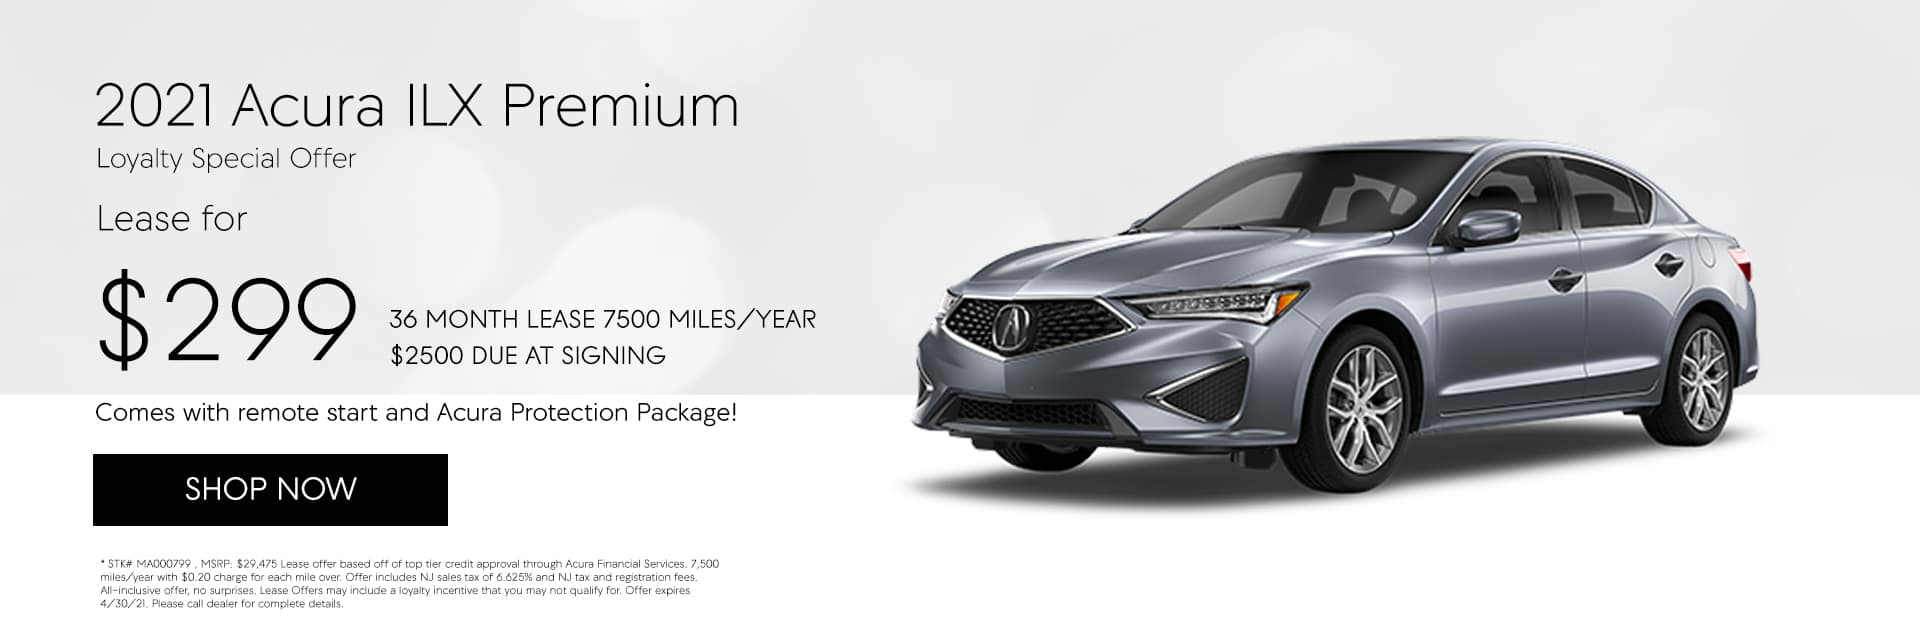 2021 Acura ILX Premium STK# MA000799 36 MONTH LEASE 7500 MILES/YEAR $2500 DUE AT SIGNING $299/MONTH MSRP: $29,475